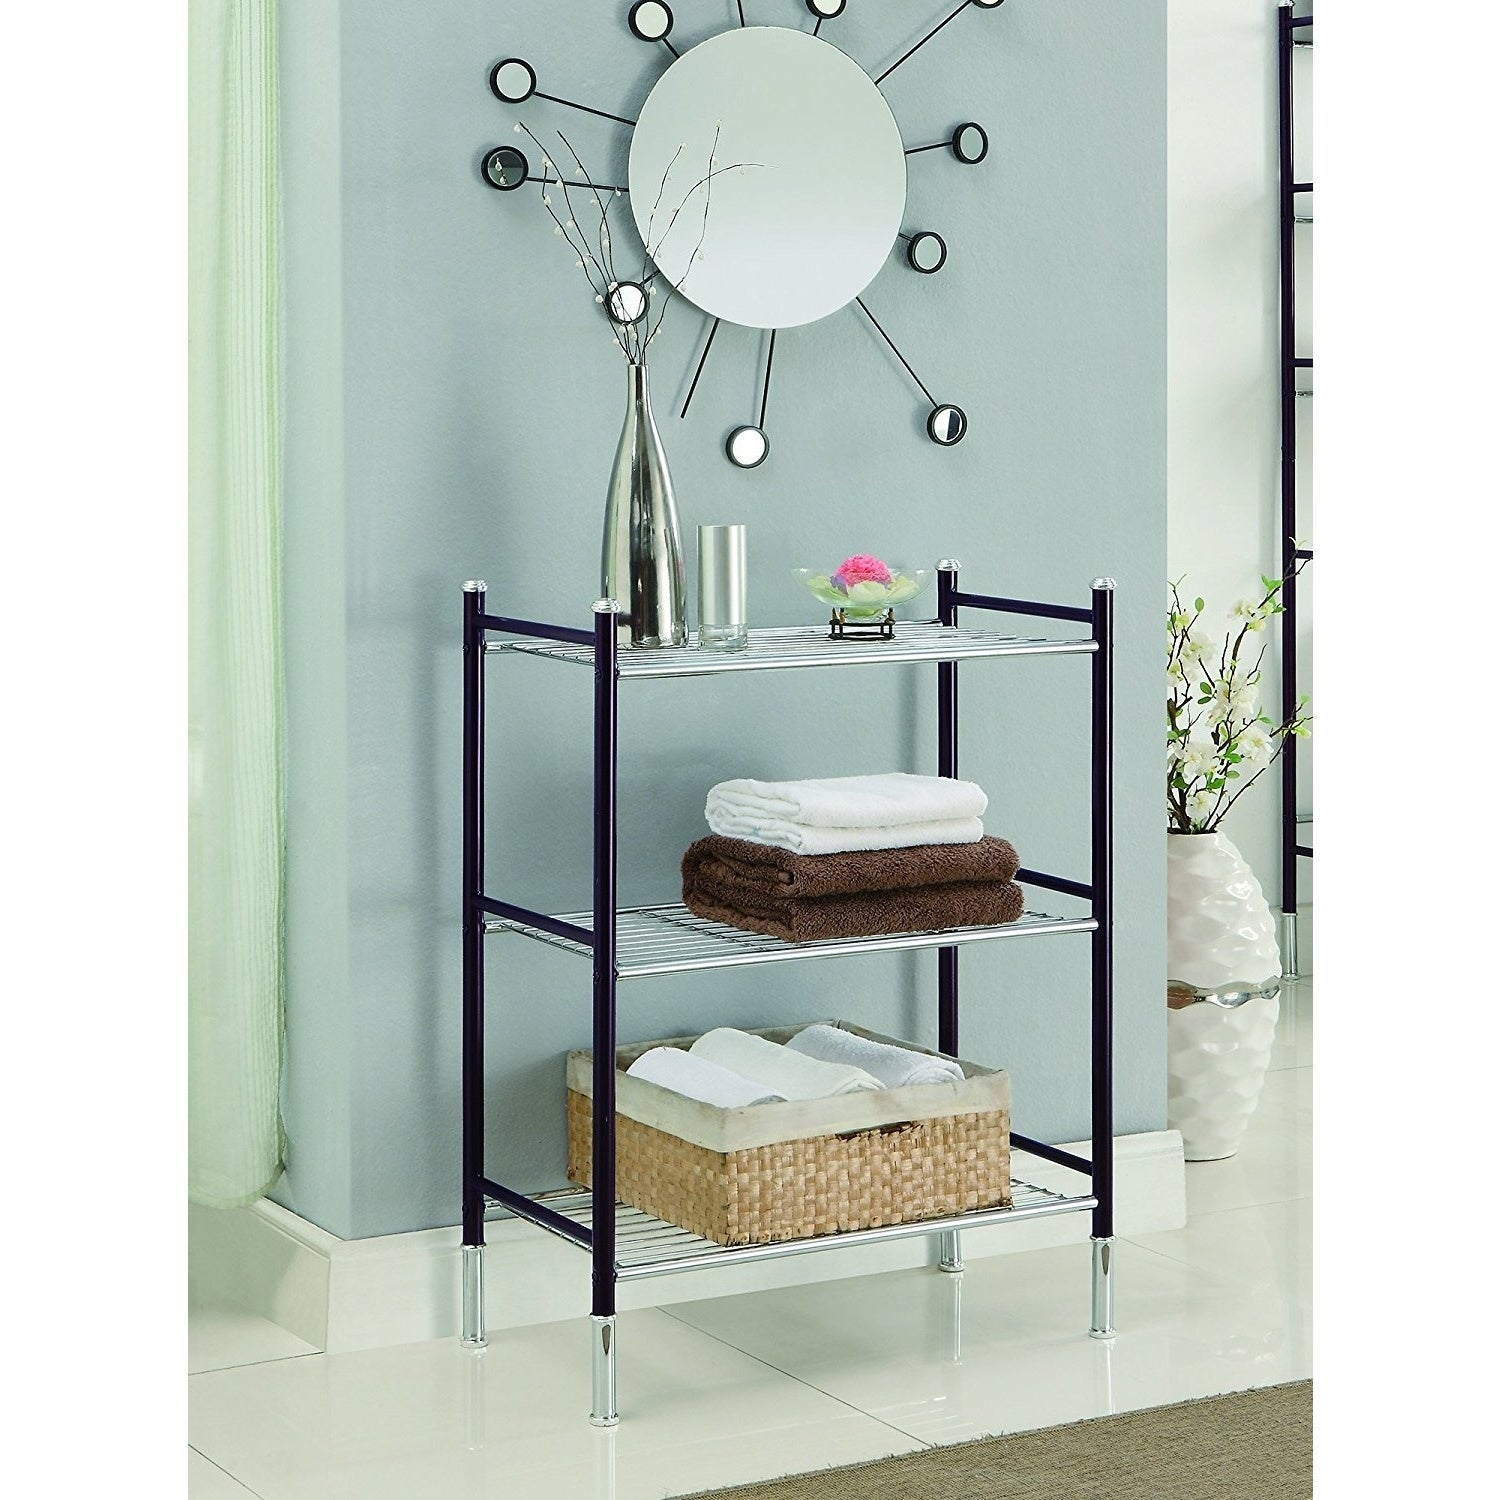 Shop Duplex 3-tier Oil Rubbed Bronze Bathroom Shelf - Free Shipping ...